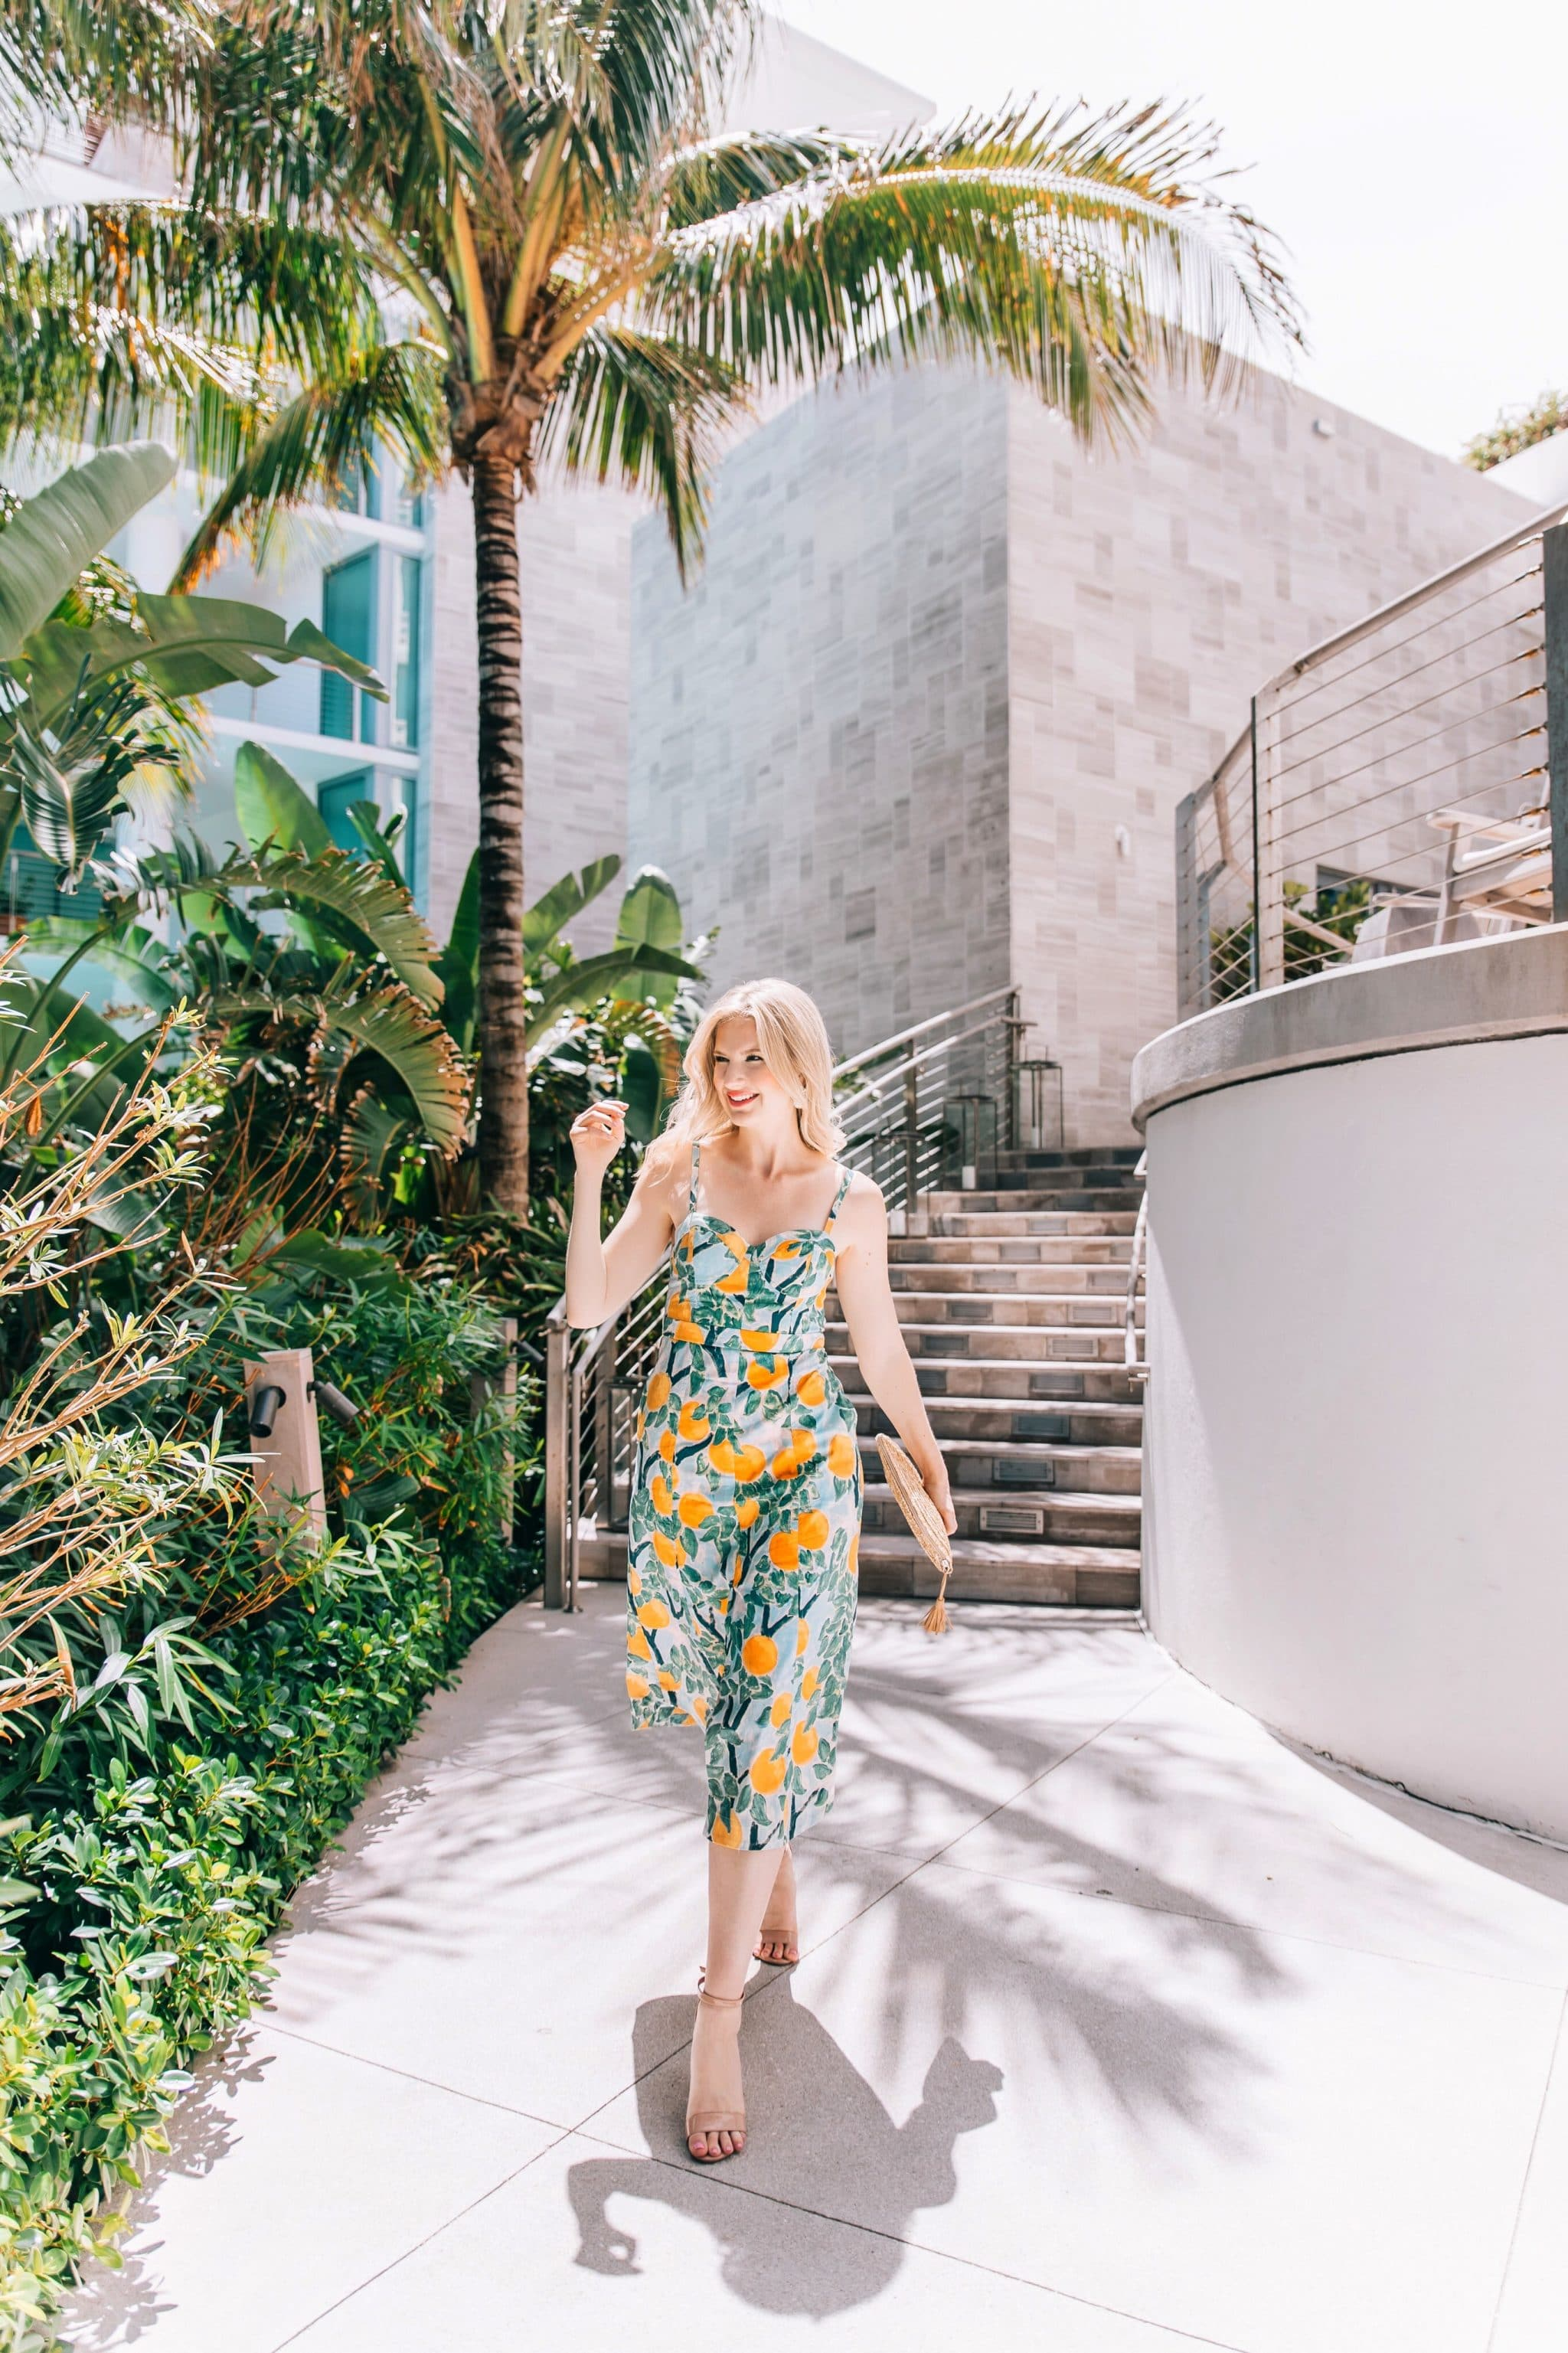 Blogger Ashley Brooke shares all of the details about her Miami weekend getaway! | www.ashleybrookedesigns.com